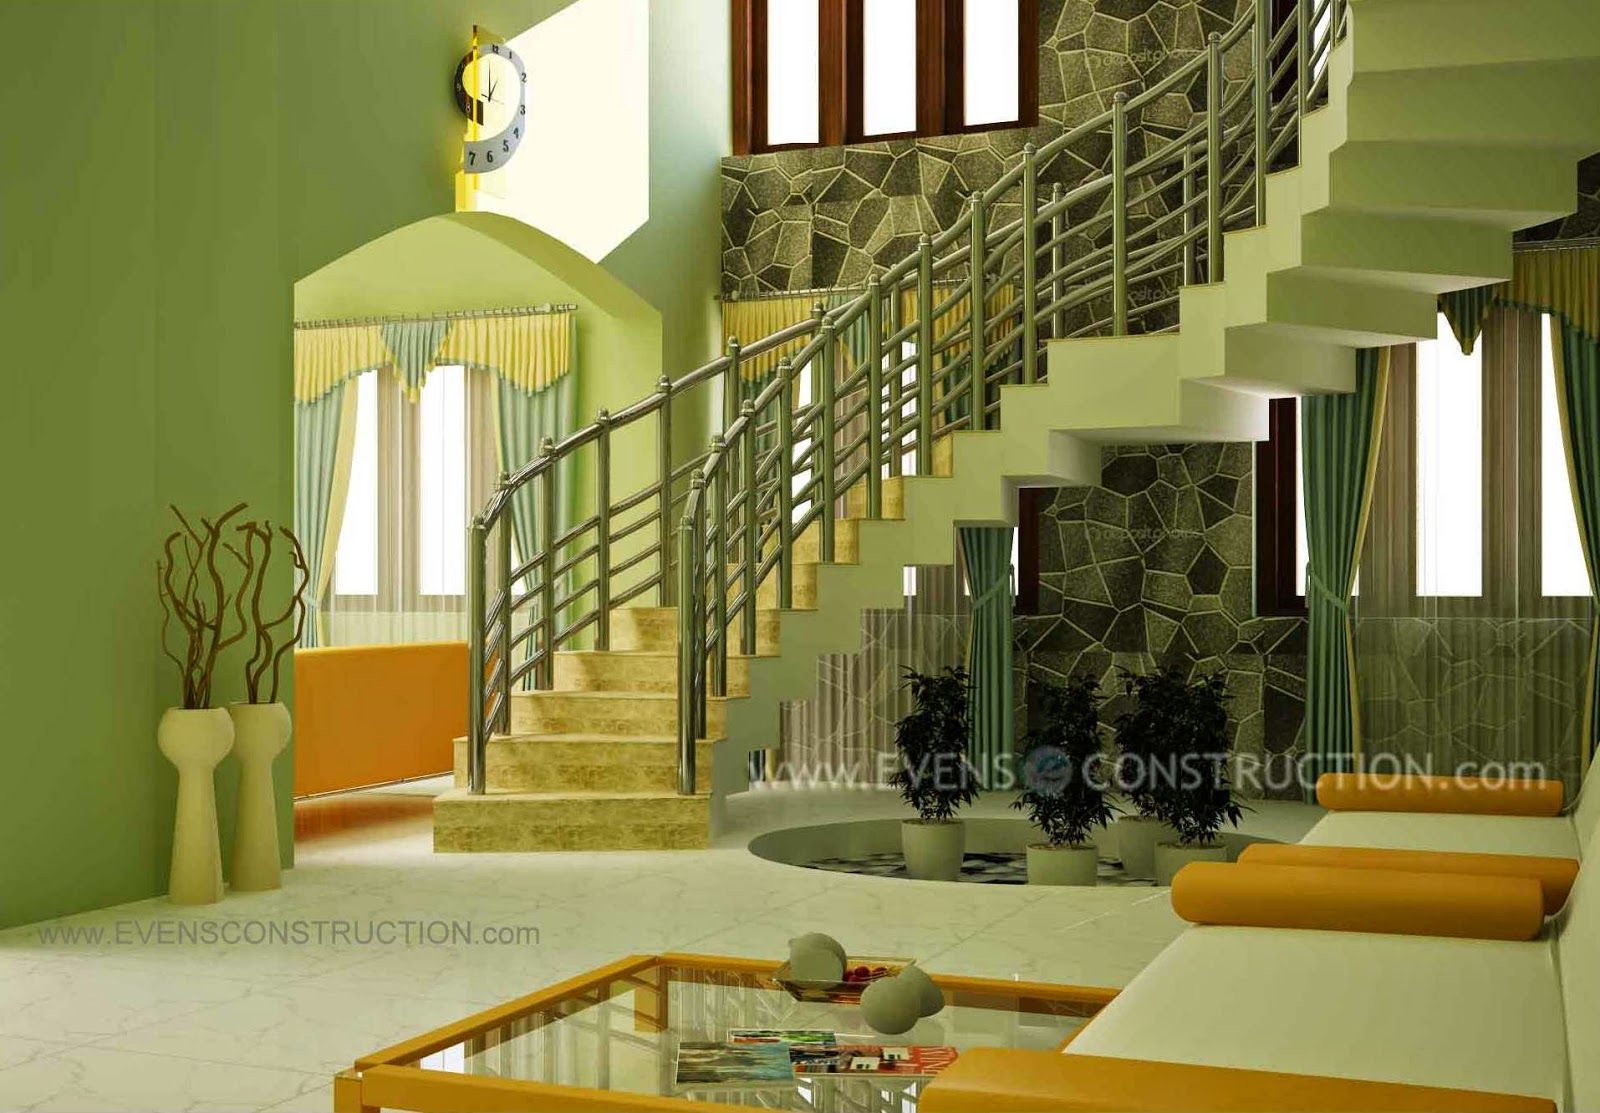 Staircase design for modern kerala home living room for Interior design ideas for small homes in kerala